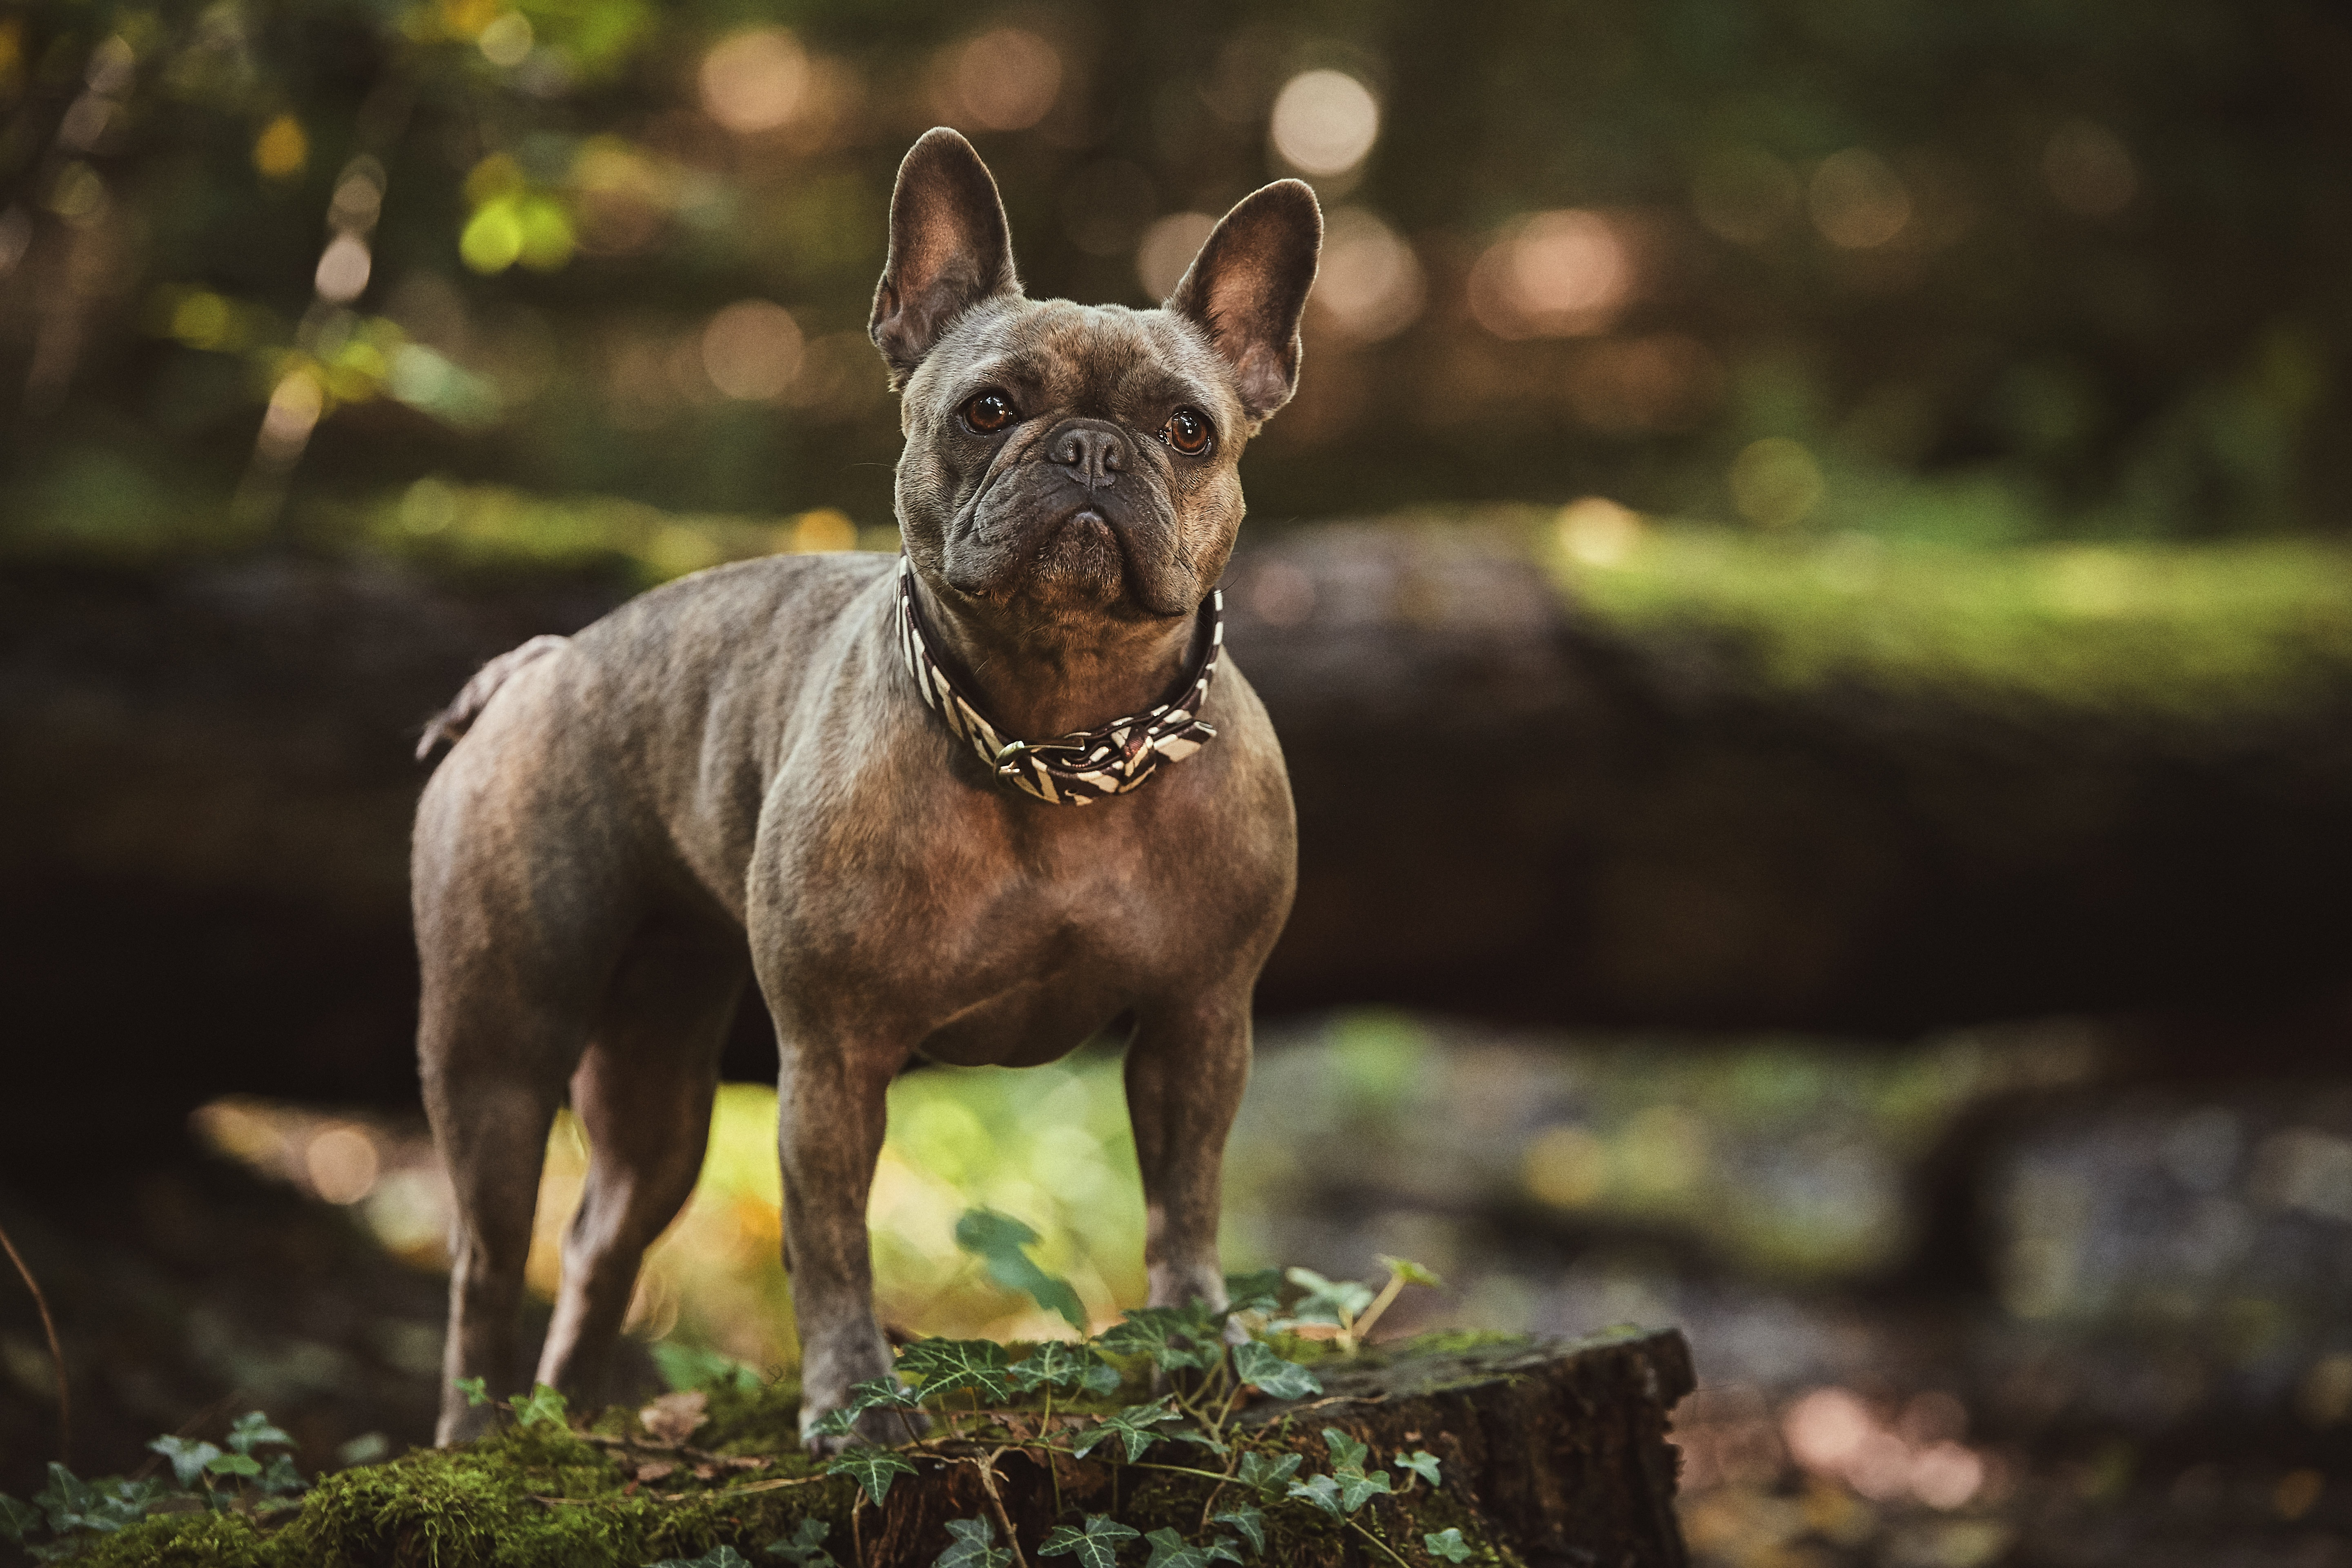 153106 download wallpaper Animals, Bulldog, Dog, Sight, Opinion screensavers and pictures for free